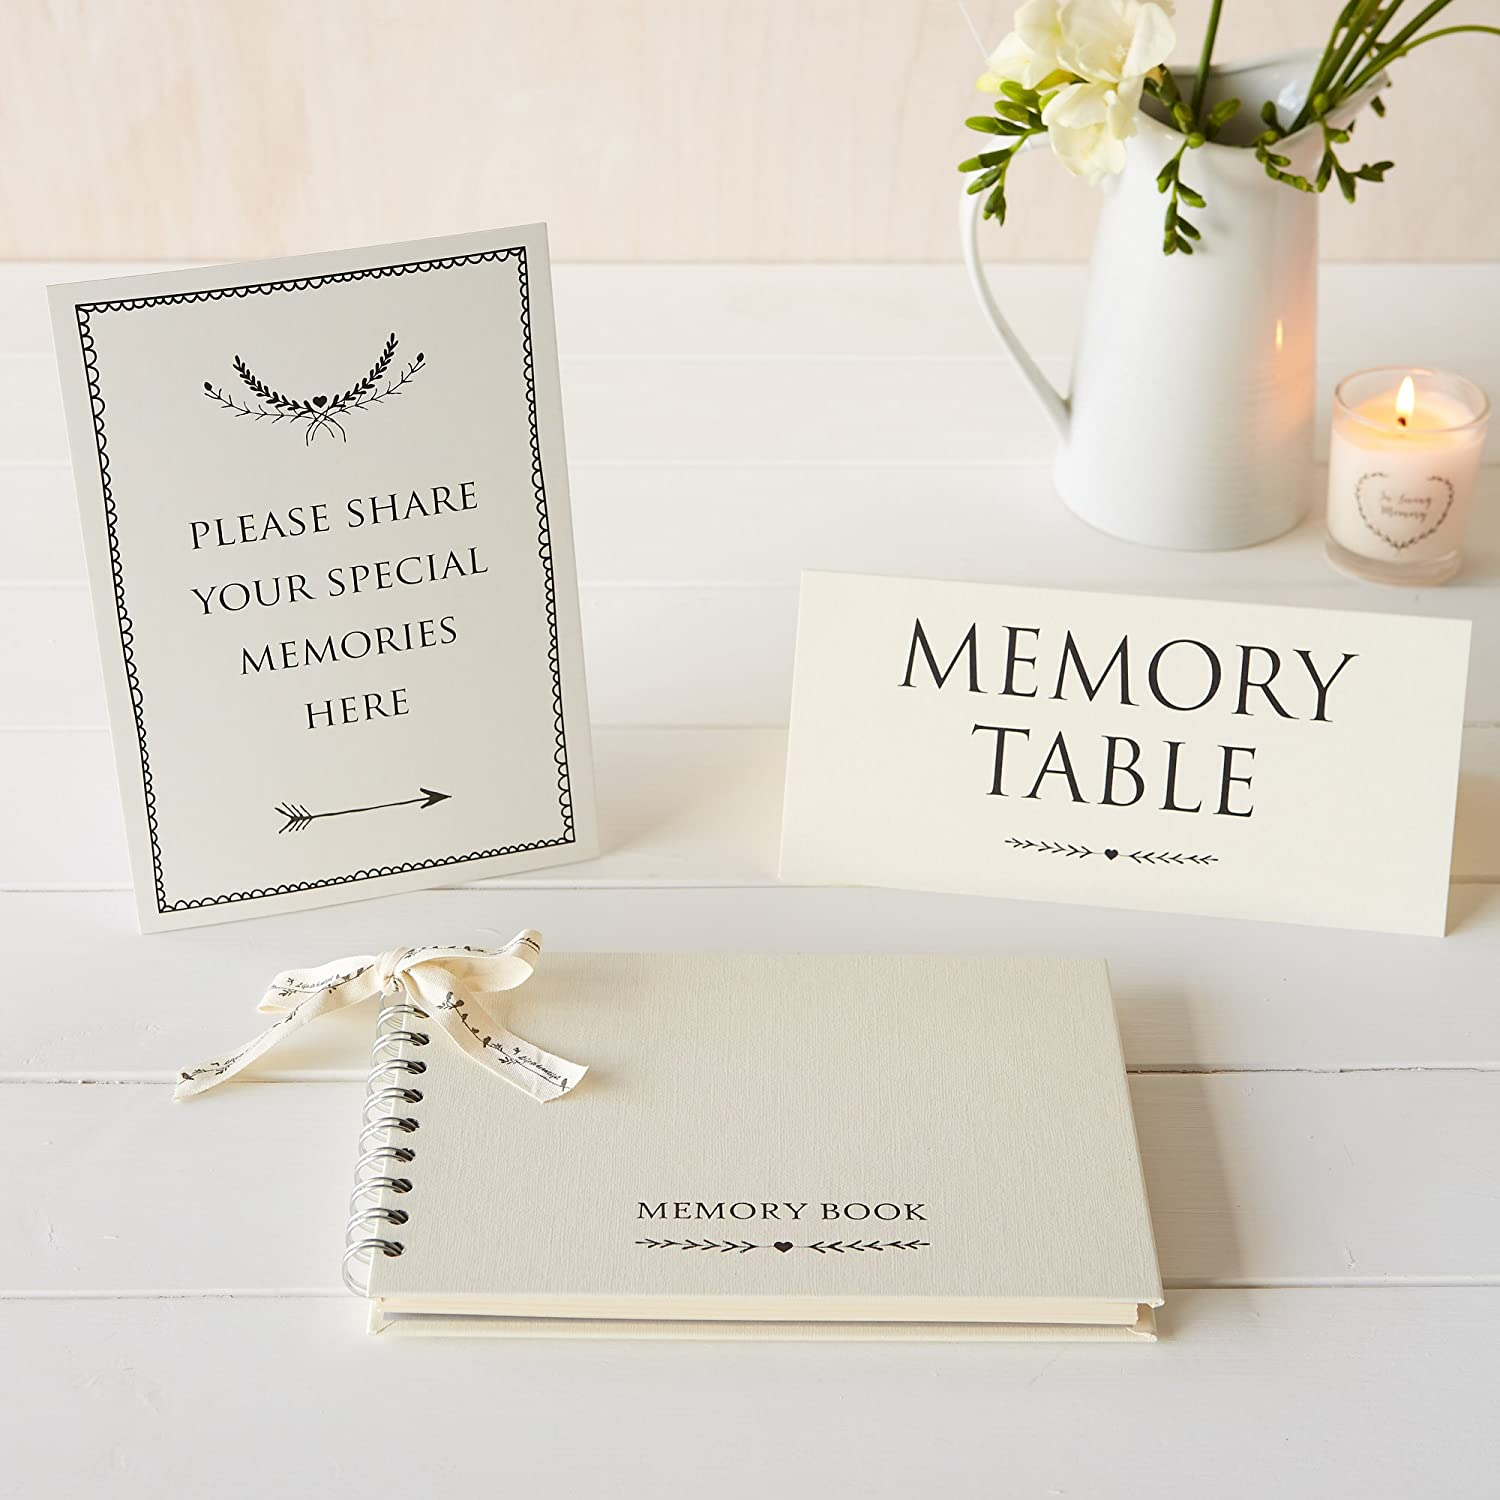 Angel & Dove Luxury A5 Memory Book & 2 Signs Set - 'Please Share Your Special Memories Here' & 'Memory Table' - Ideal for Funeral Condolence Book, Memorial, Remembrance, Celebration of Life